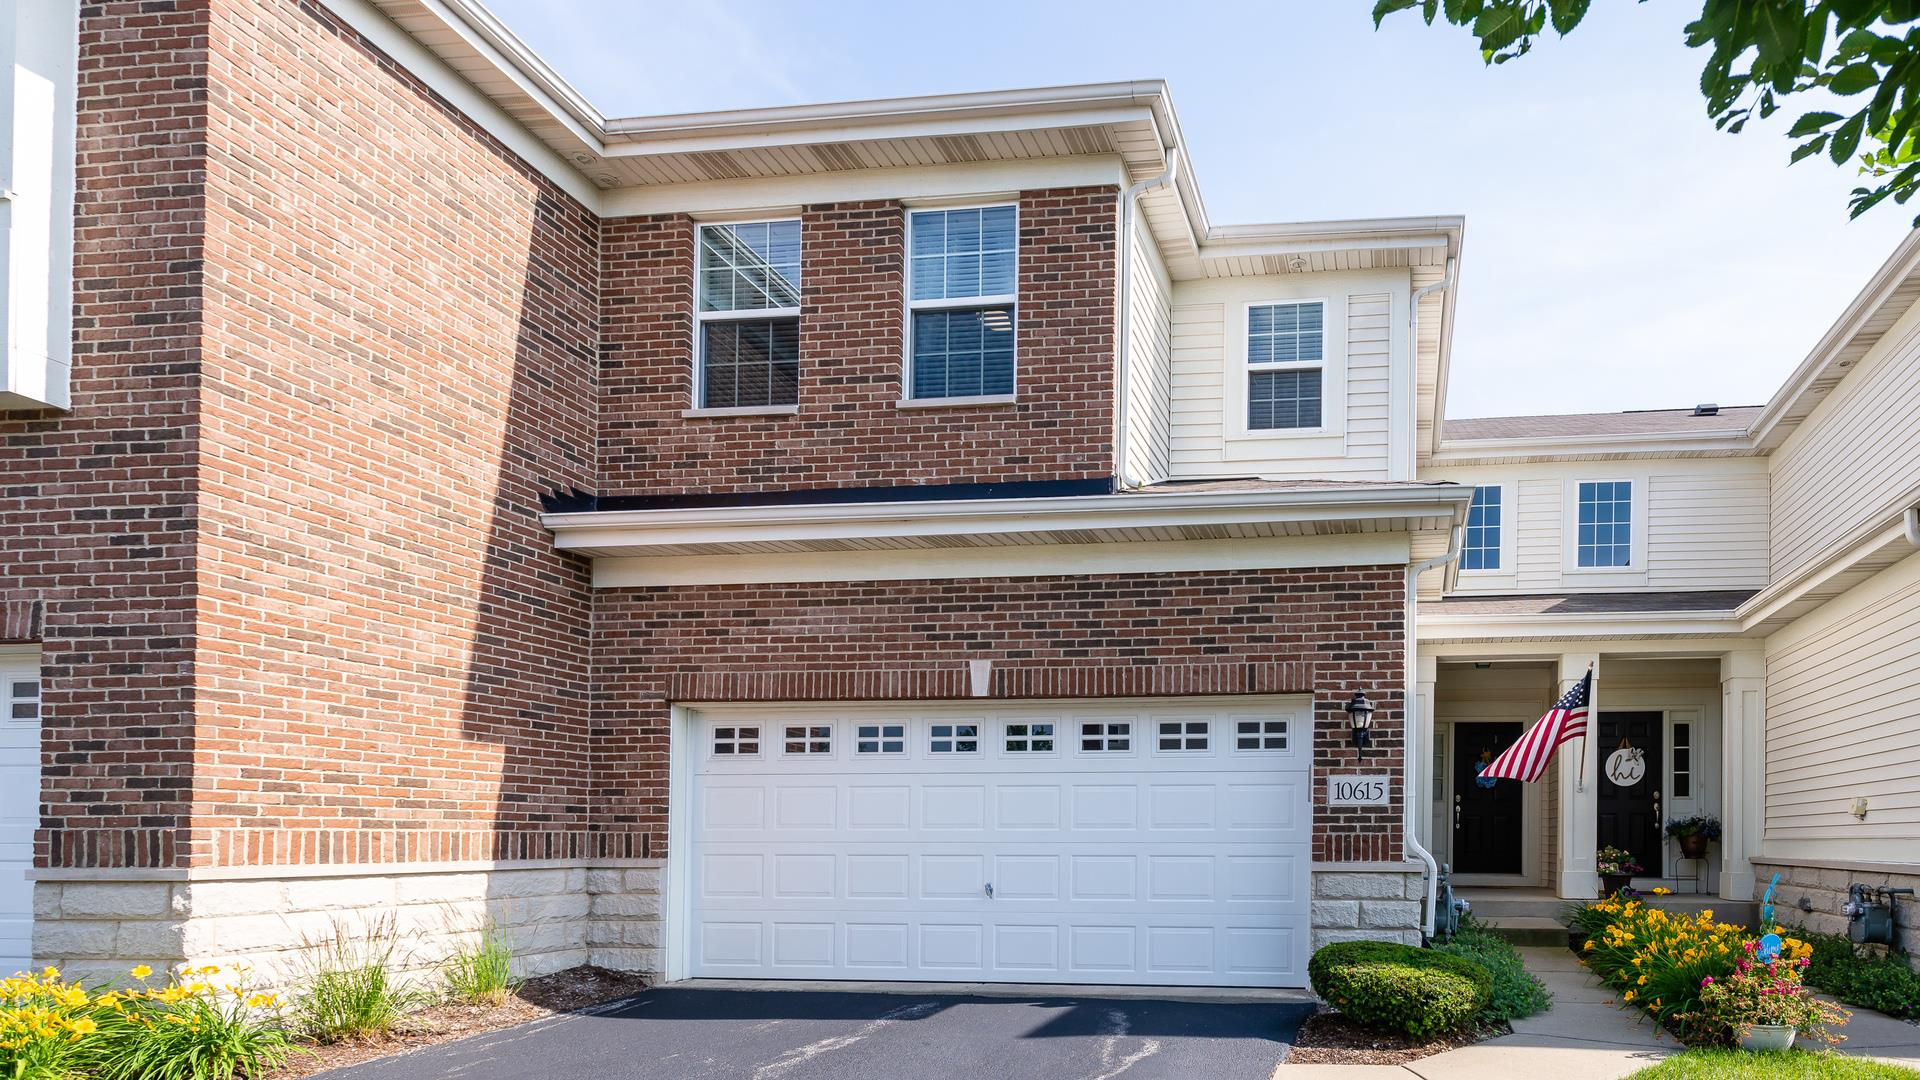 10615 153rd Place, Orland Park, IL 60462 - #: 10769788